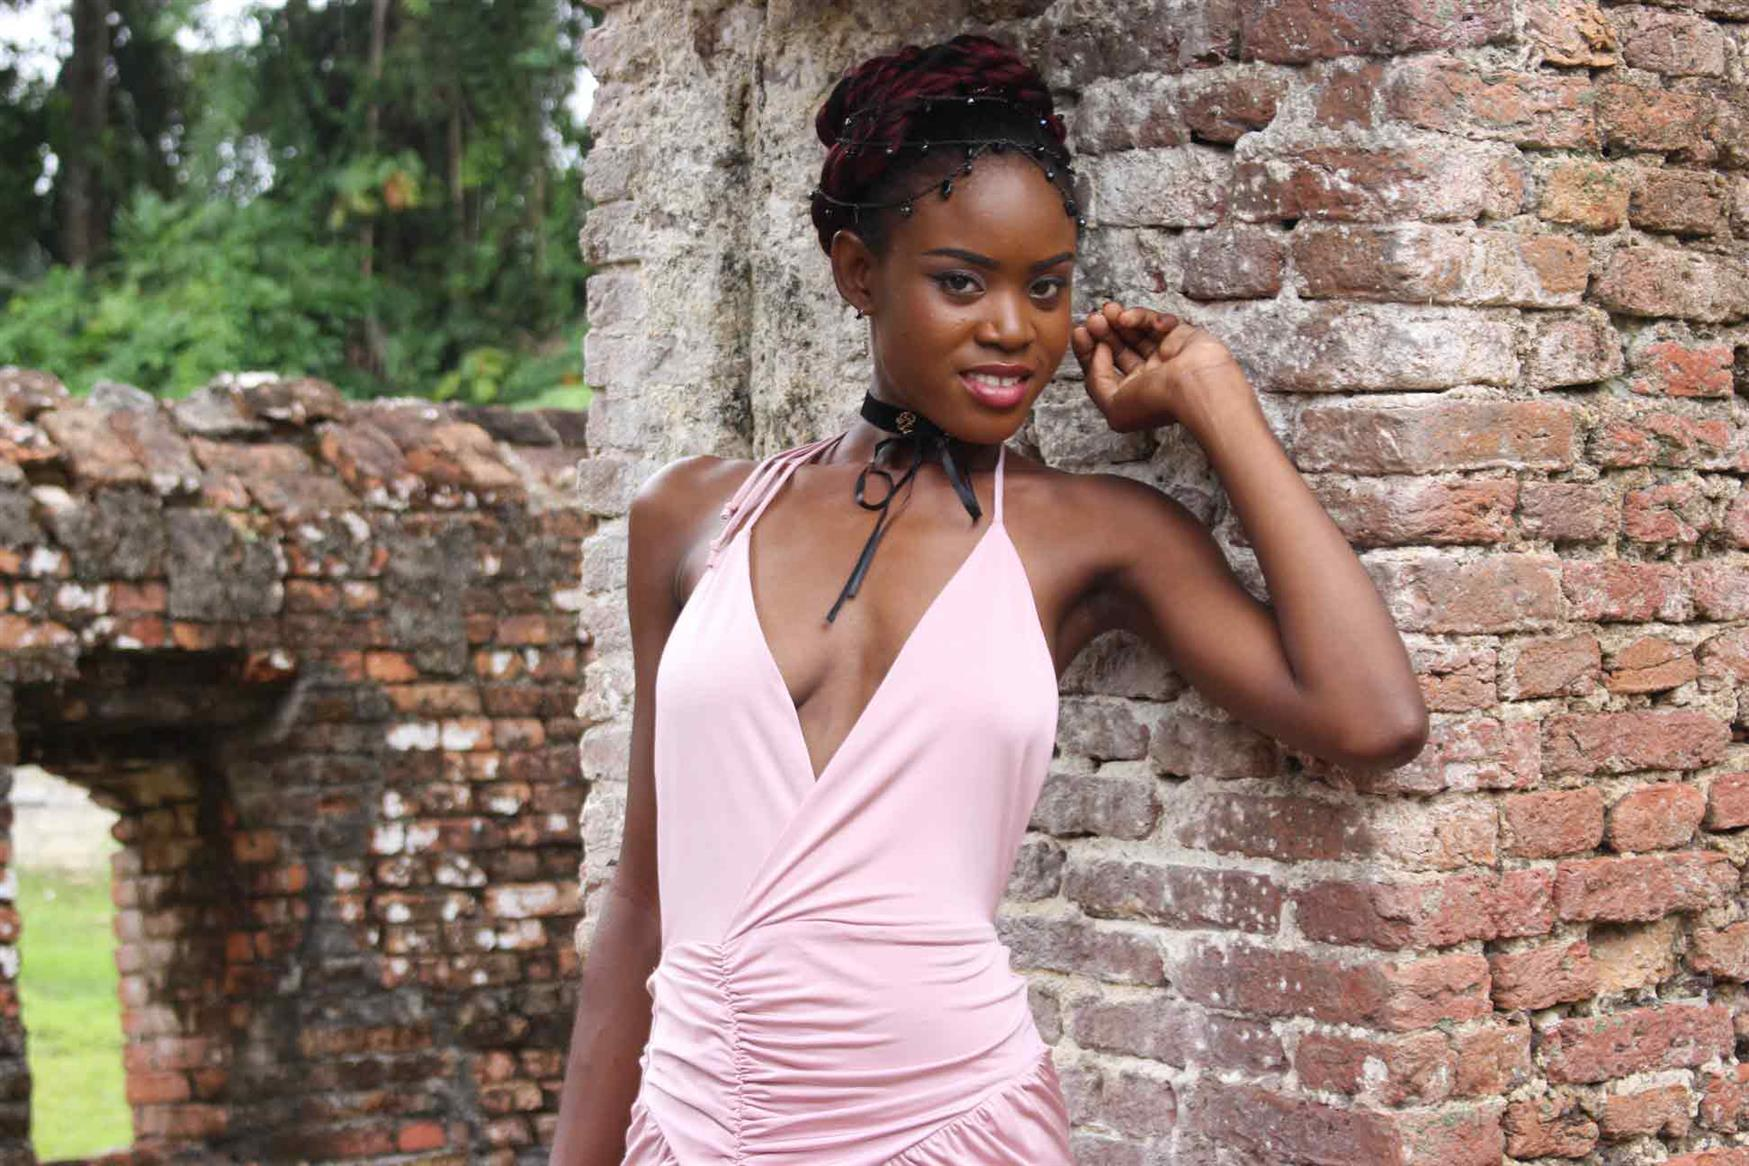 Miss Earth Guyana 2018 finalist Anita Baker 'Beauties for a Cause' Project